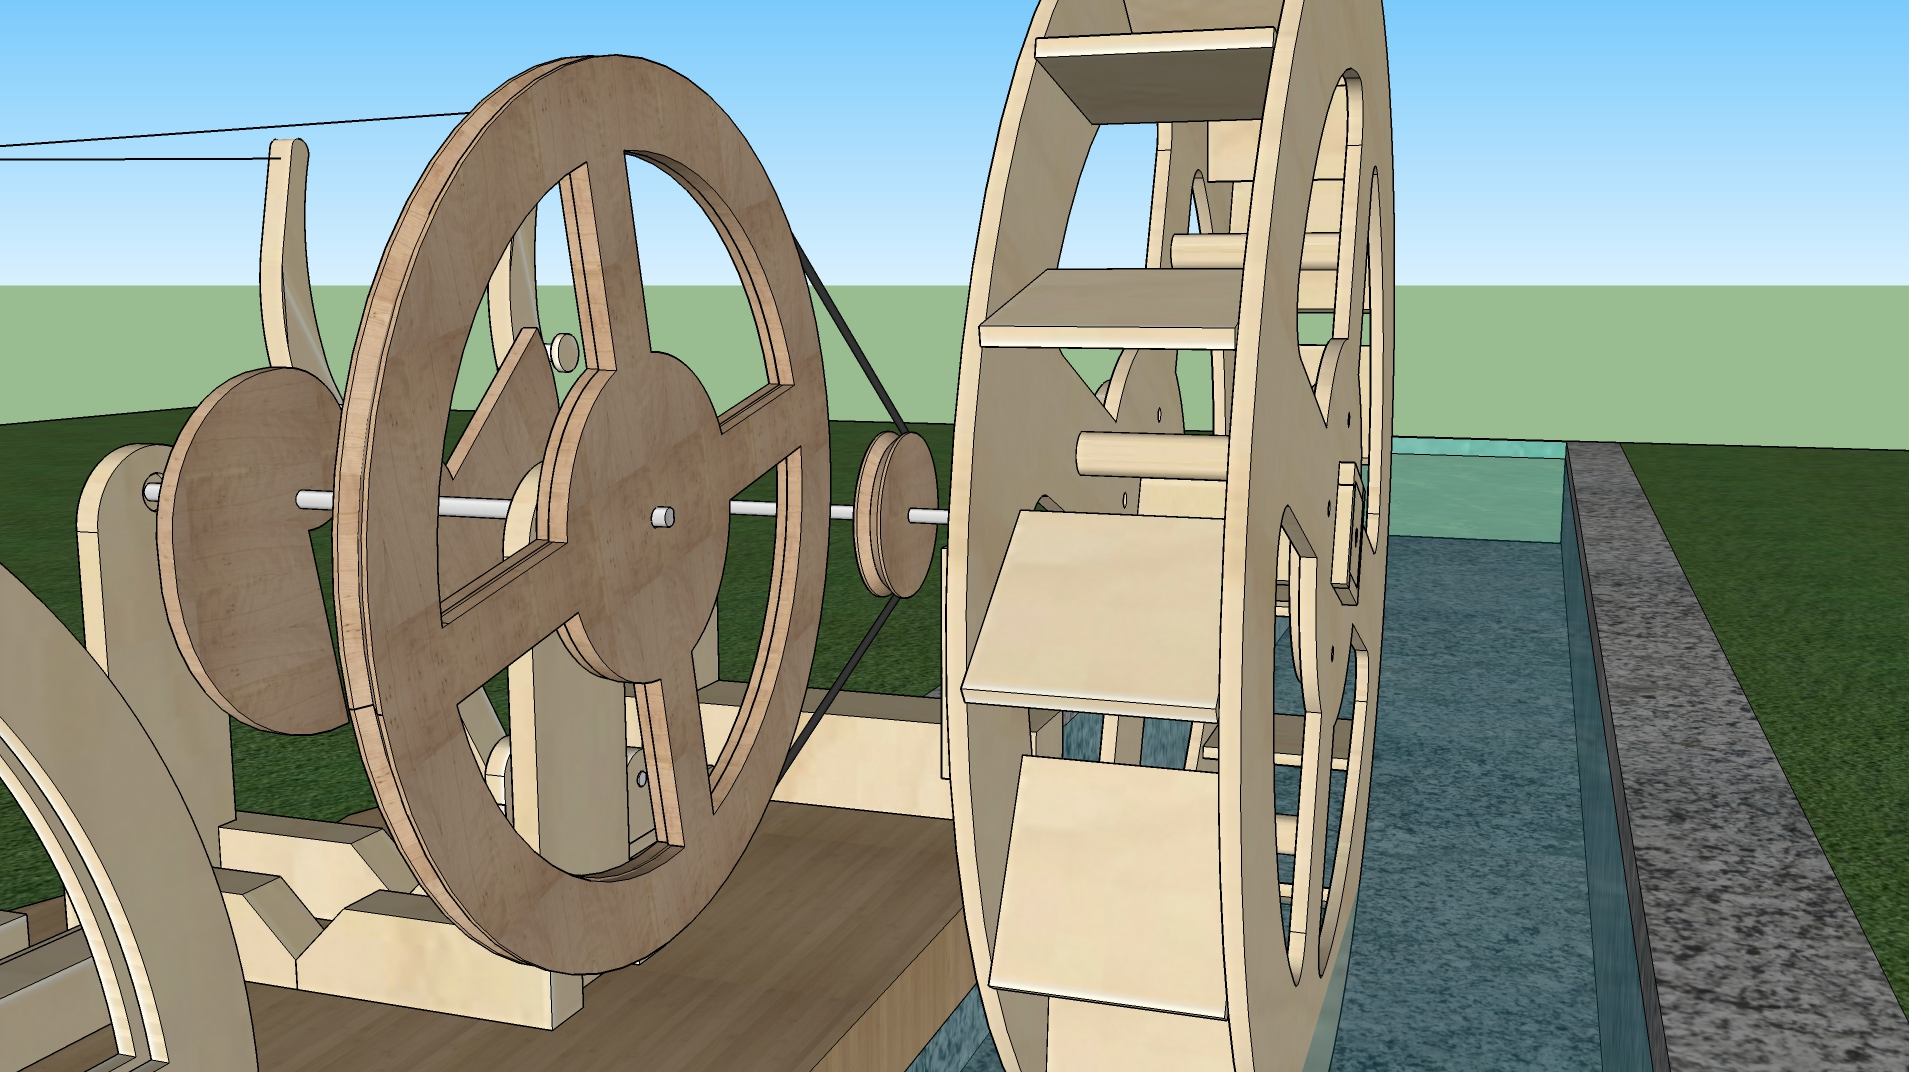 Waterwheel and pulleys 4:1 gear reduction